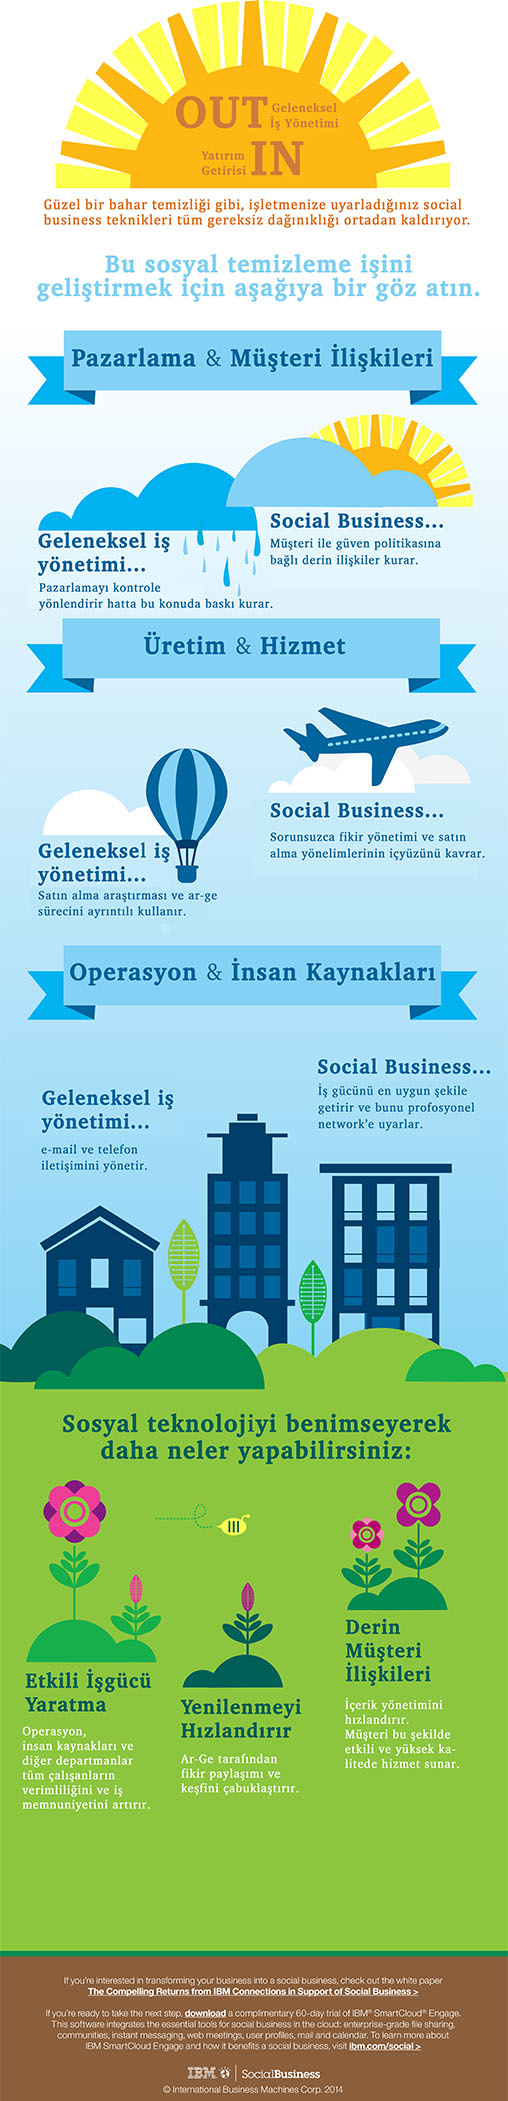 IBM_Social_Business_Spring_Infographic_opt3